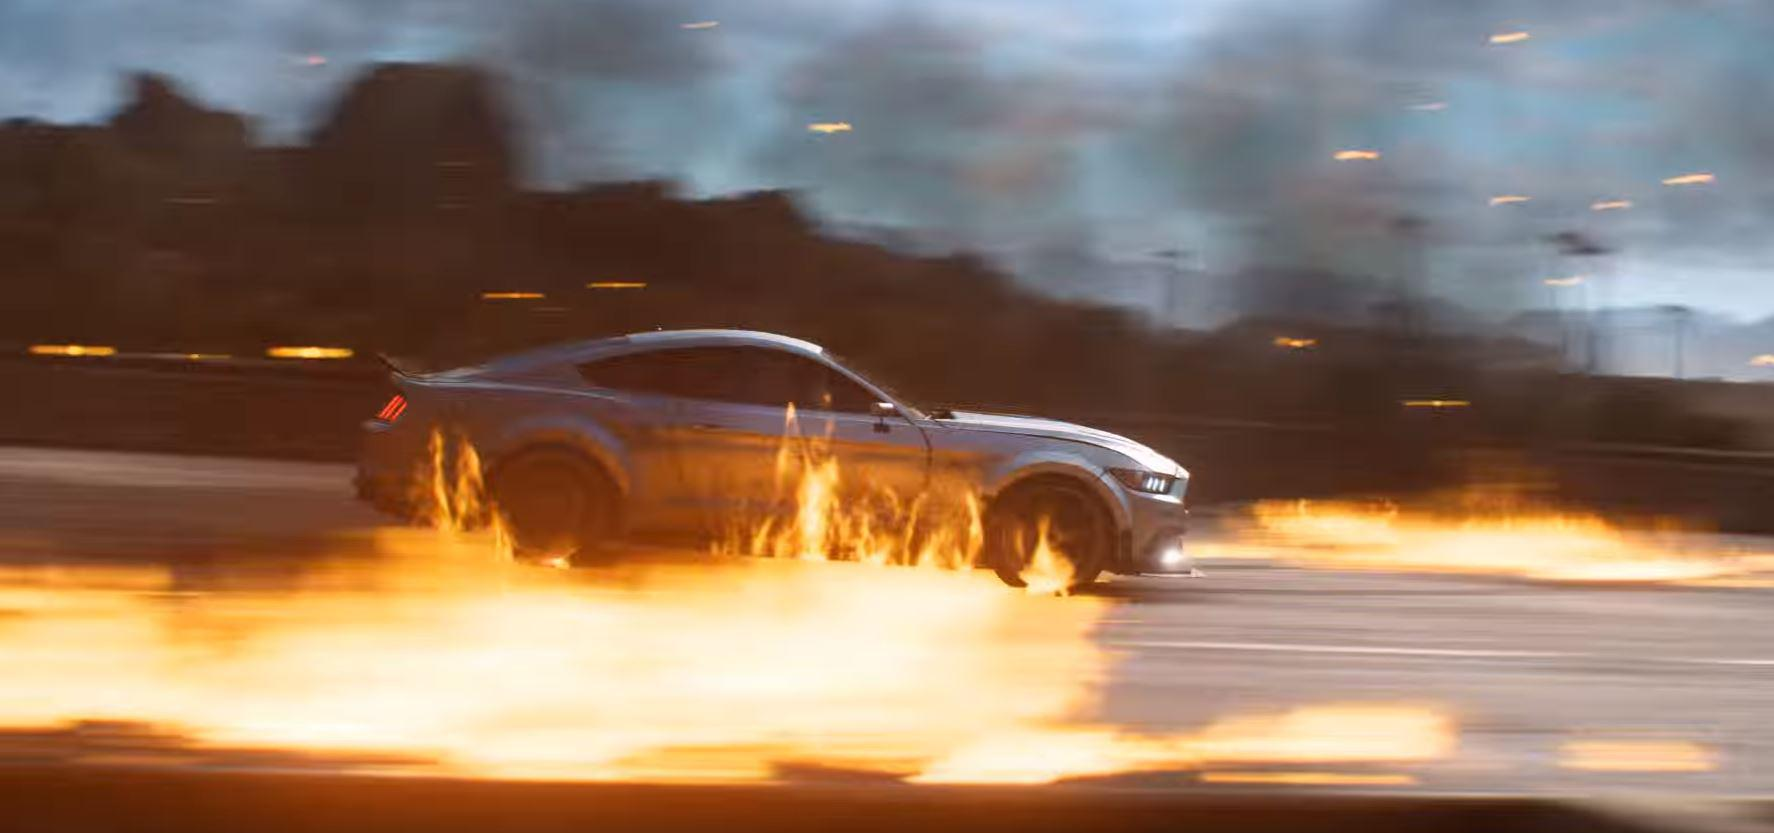 Payback is shaping up to be the a unique take on the racing genre